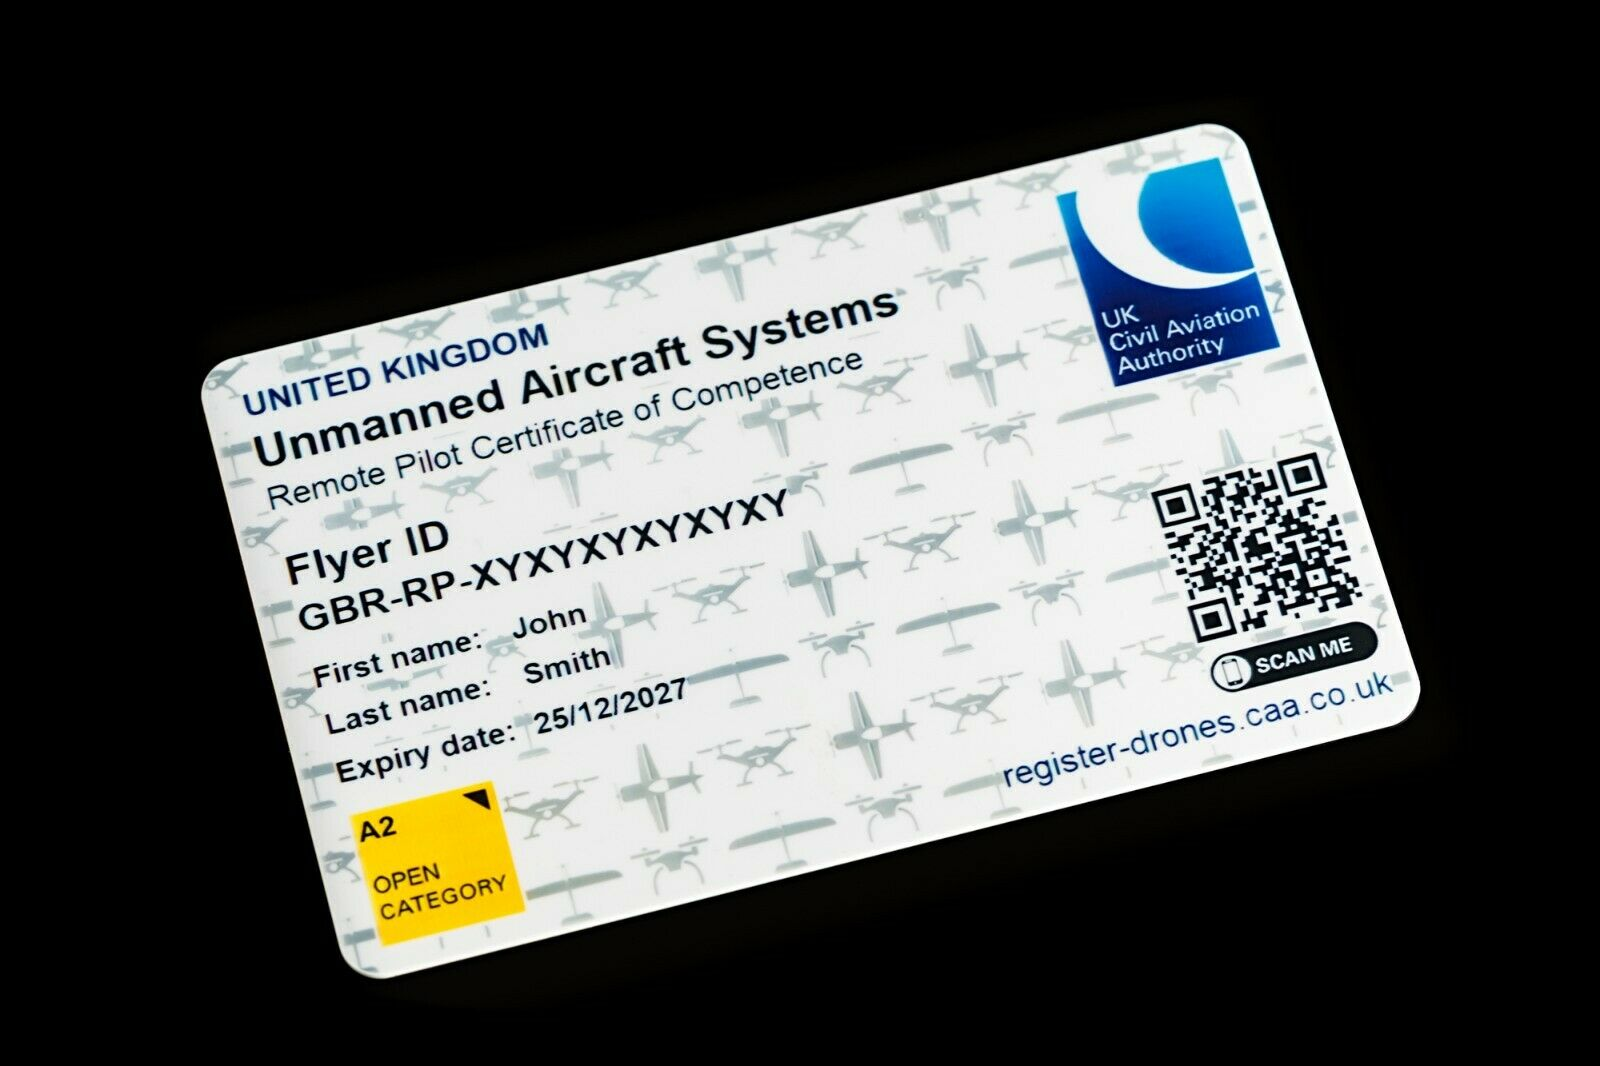 CAA A2 CofC Card - Drone Pilot (Unmanned Aircraft Operator) ID Card with lanyard